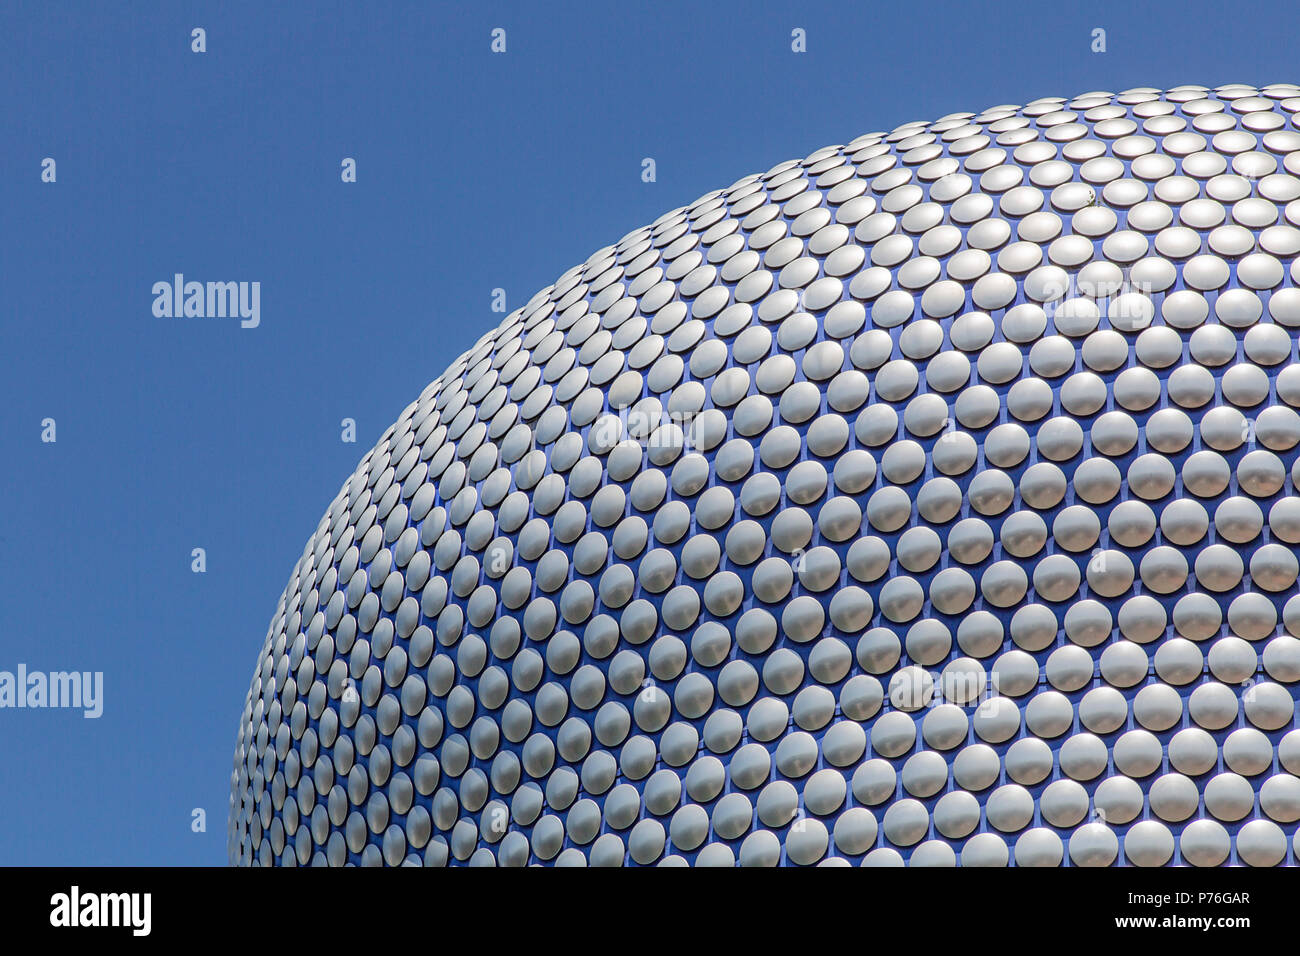 Birmingham, UK: June 29, 2018: Selfridges is one of Birmingham city's most distinctive and iconic landmarks it is part of the Bullring Shopping Centre - Stock Image